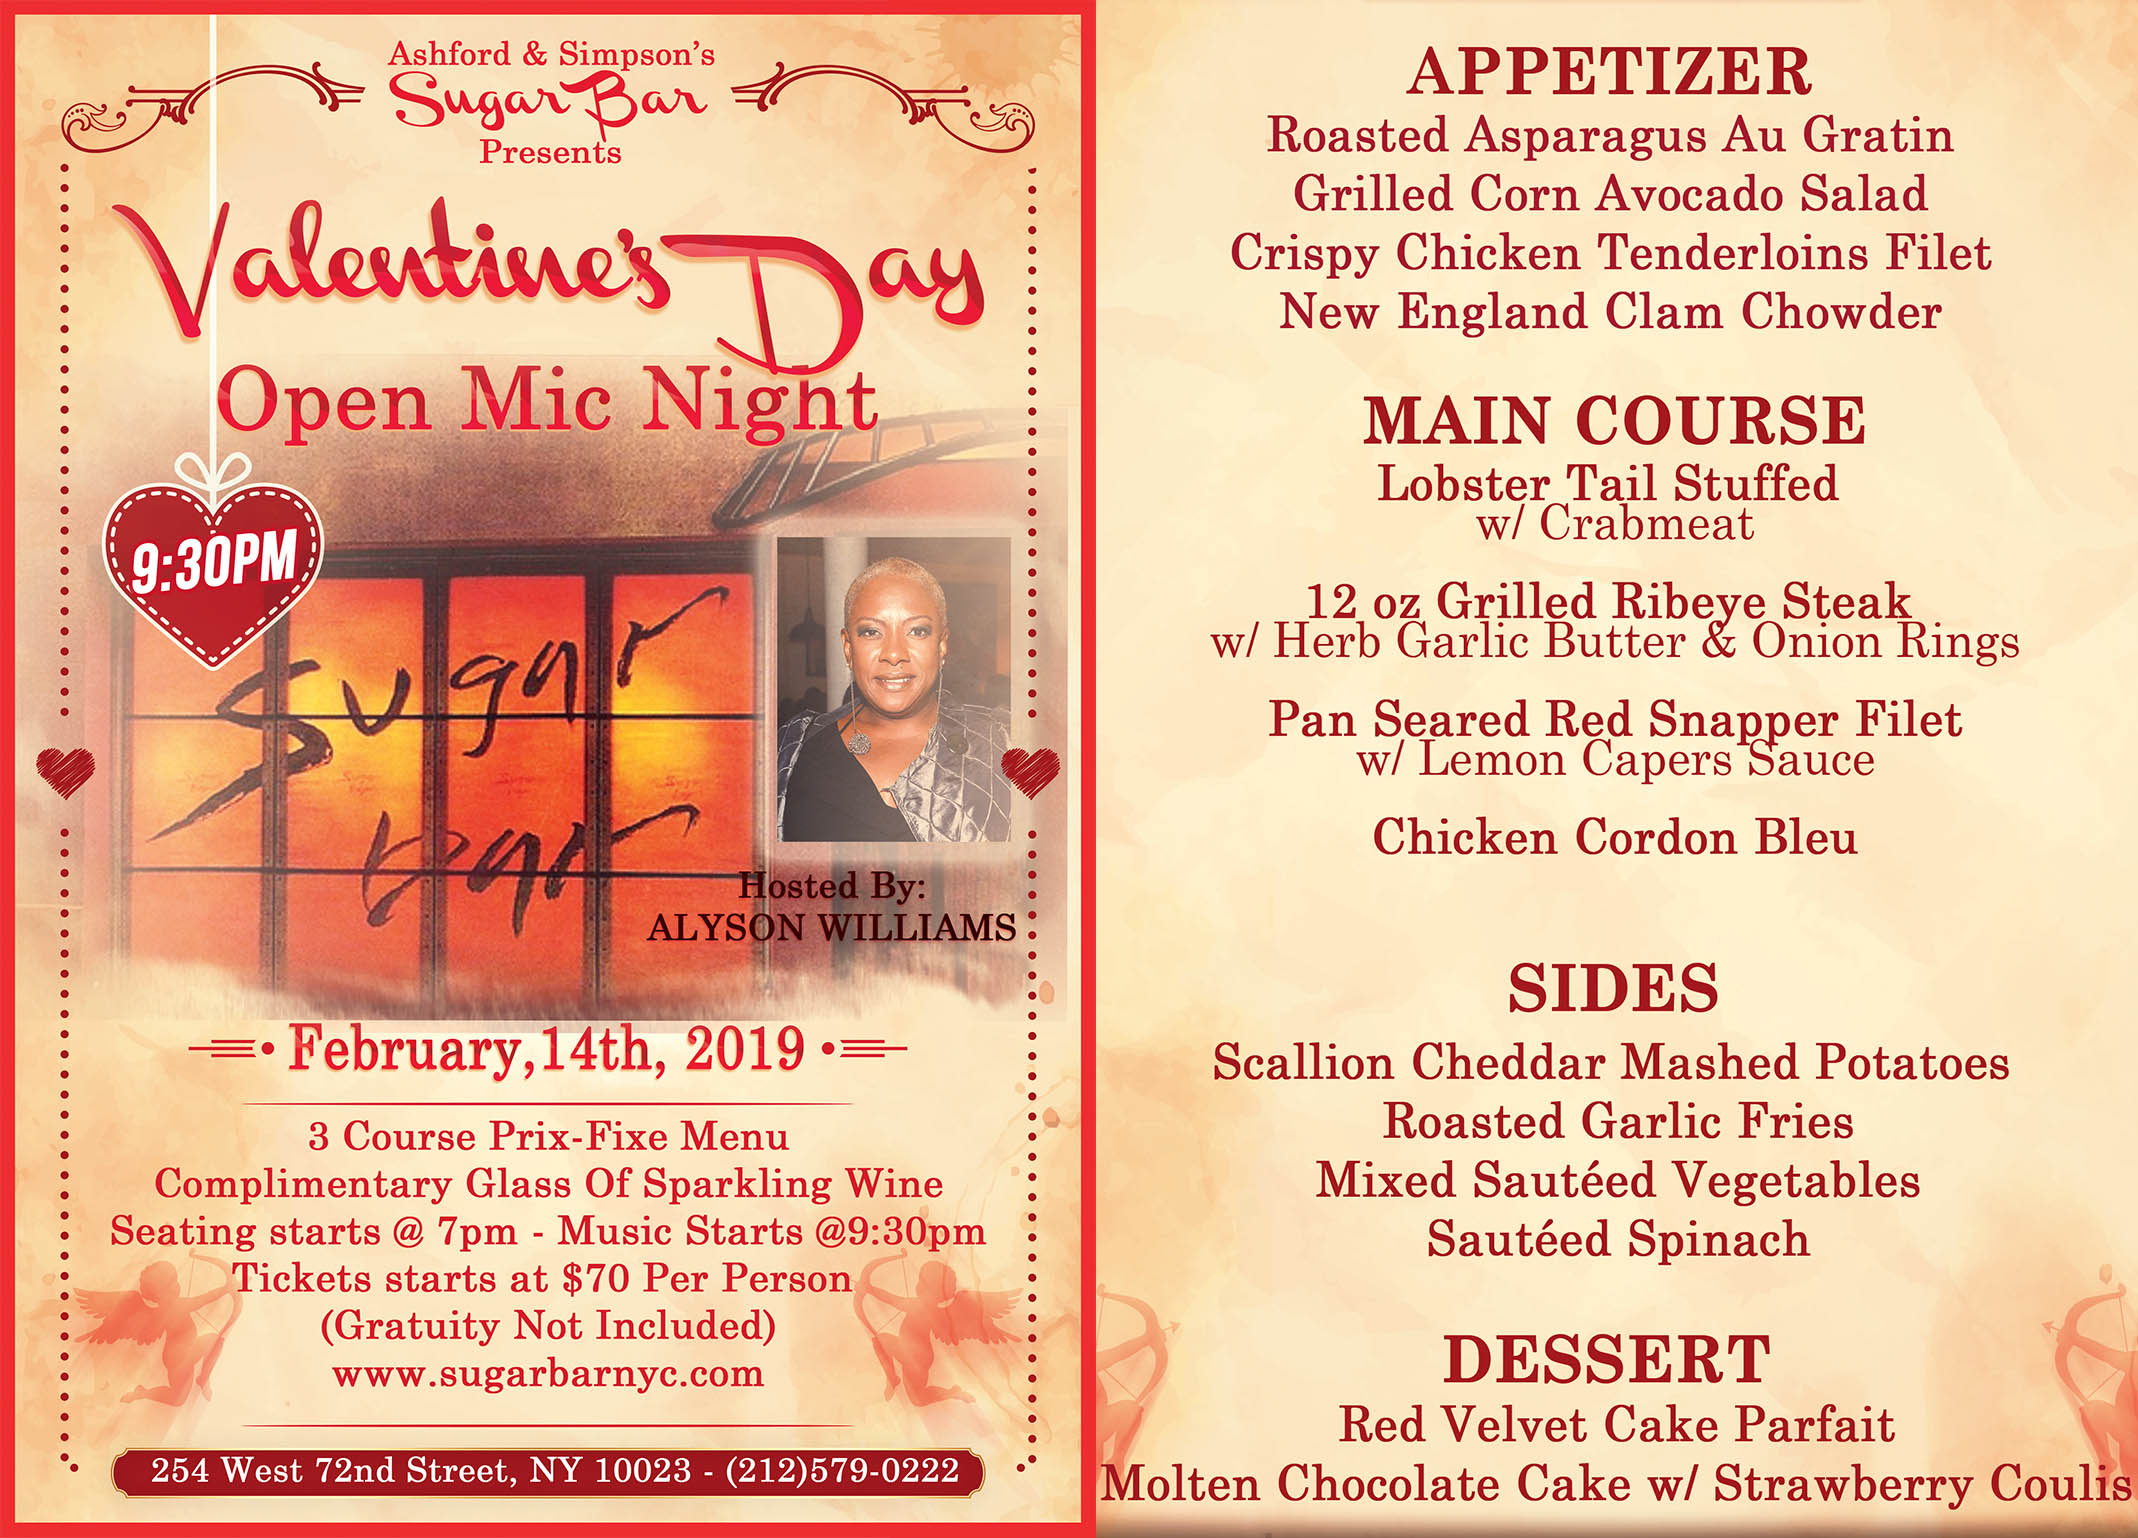 Valentine's Day at Ashford & Simpson's Sugar Bar in New York City Hosted by Alyson Williams